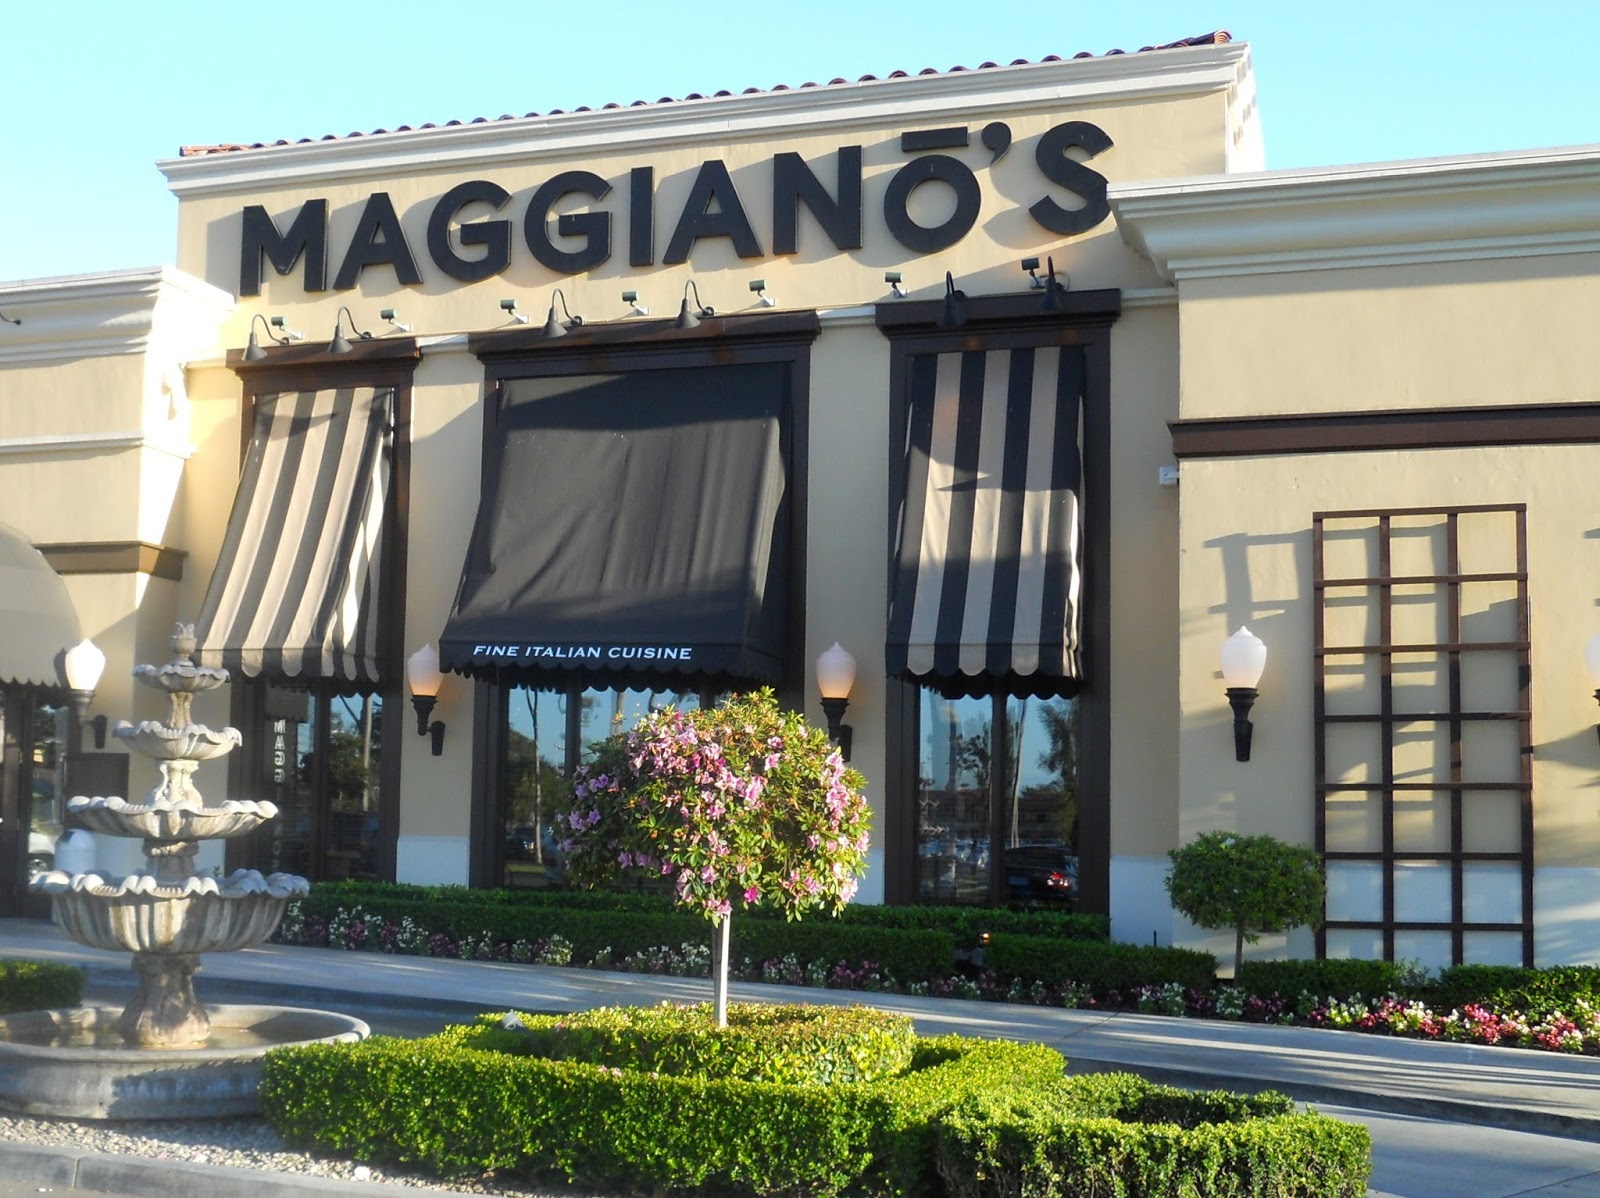 Maggiano's coupon code